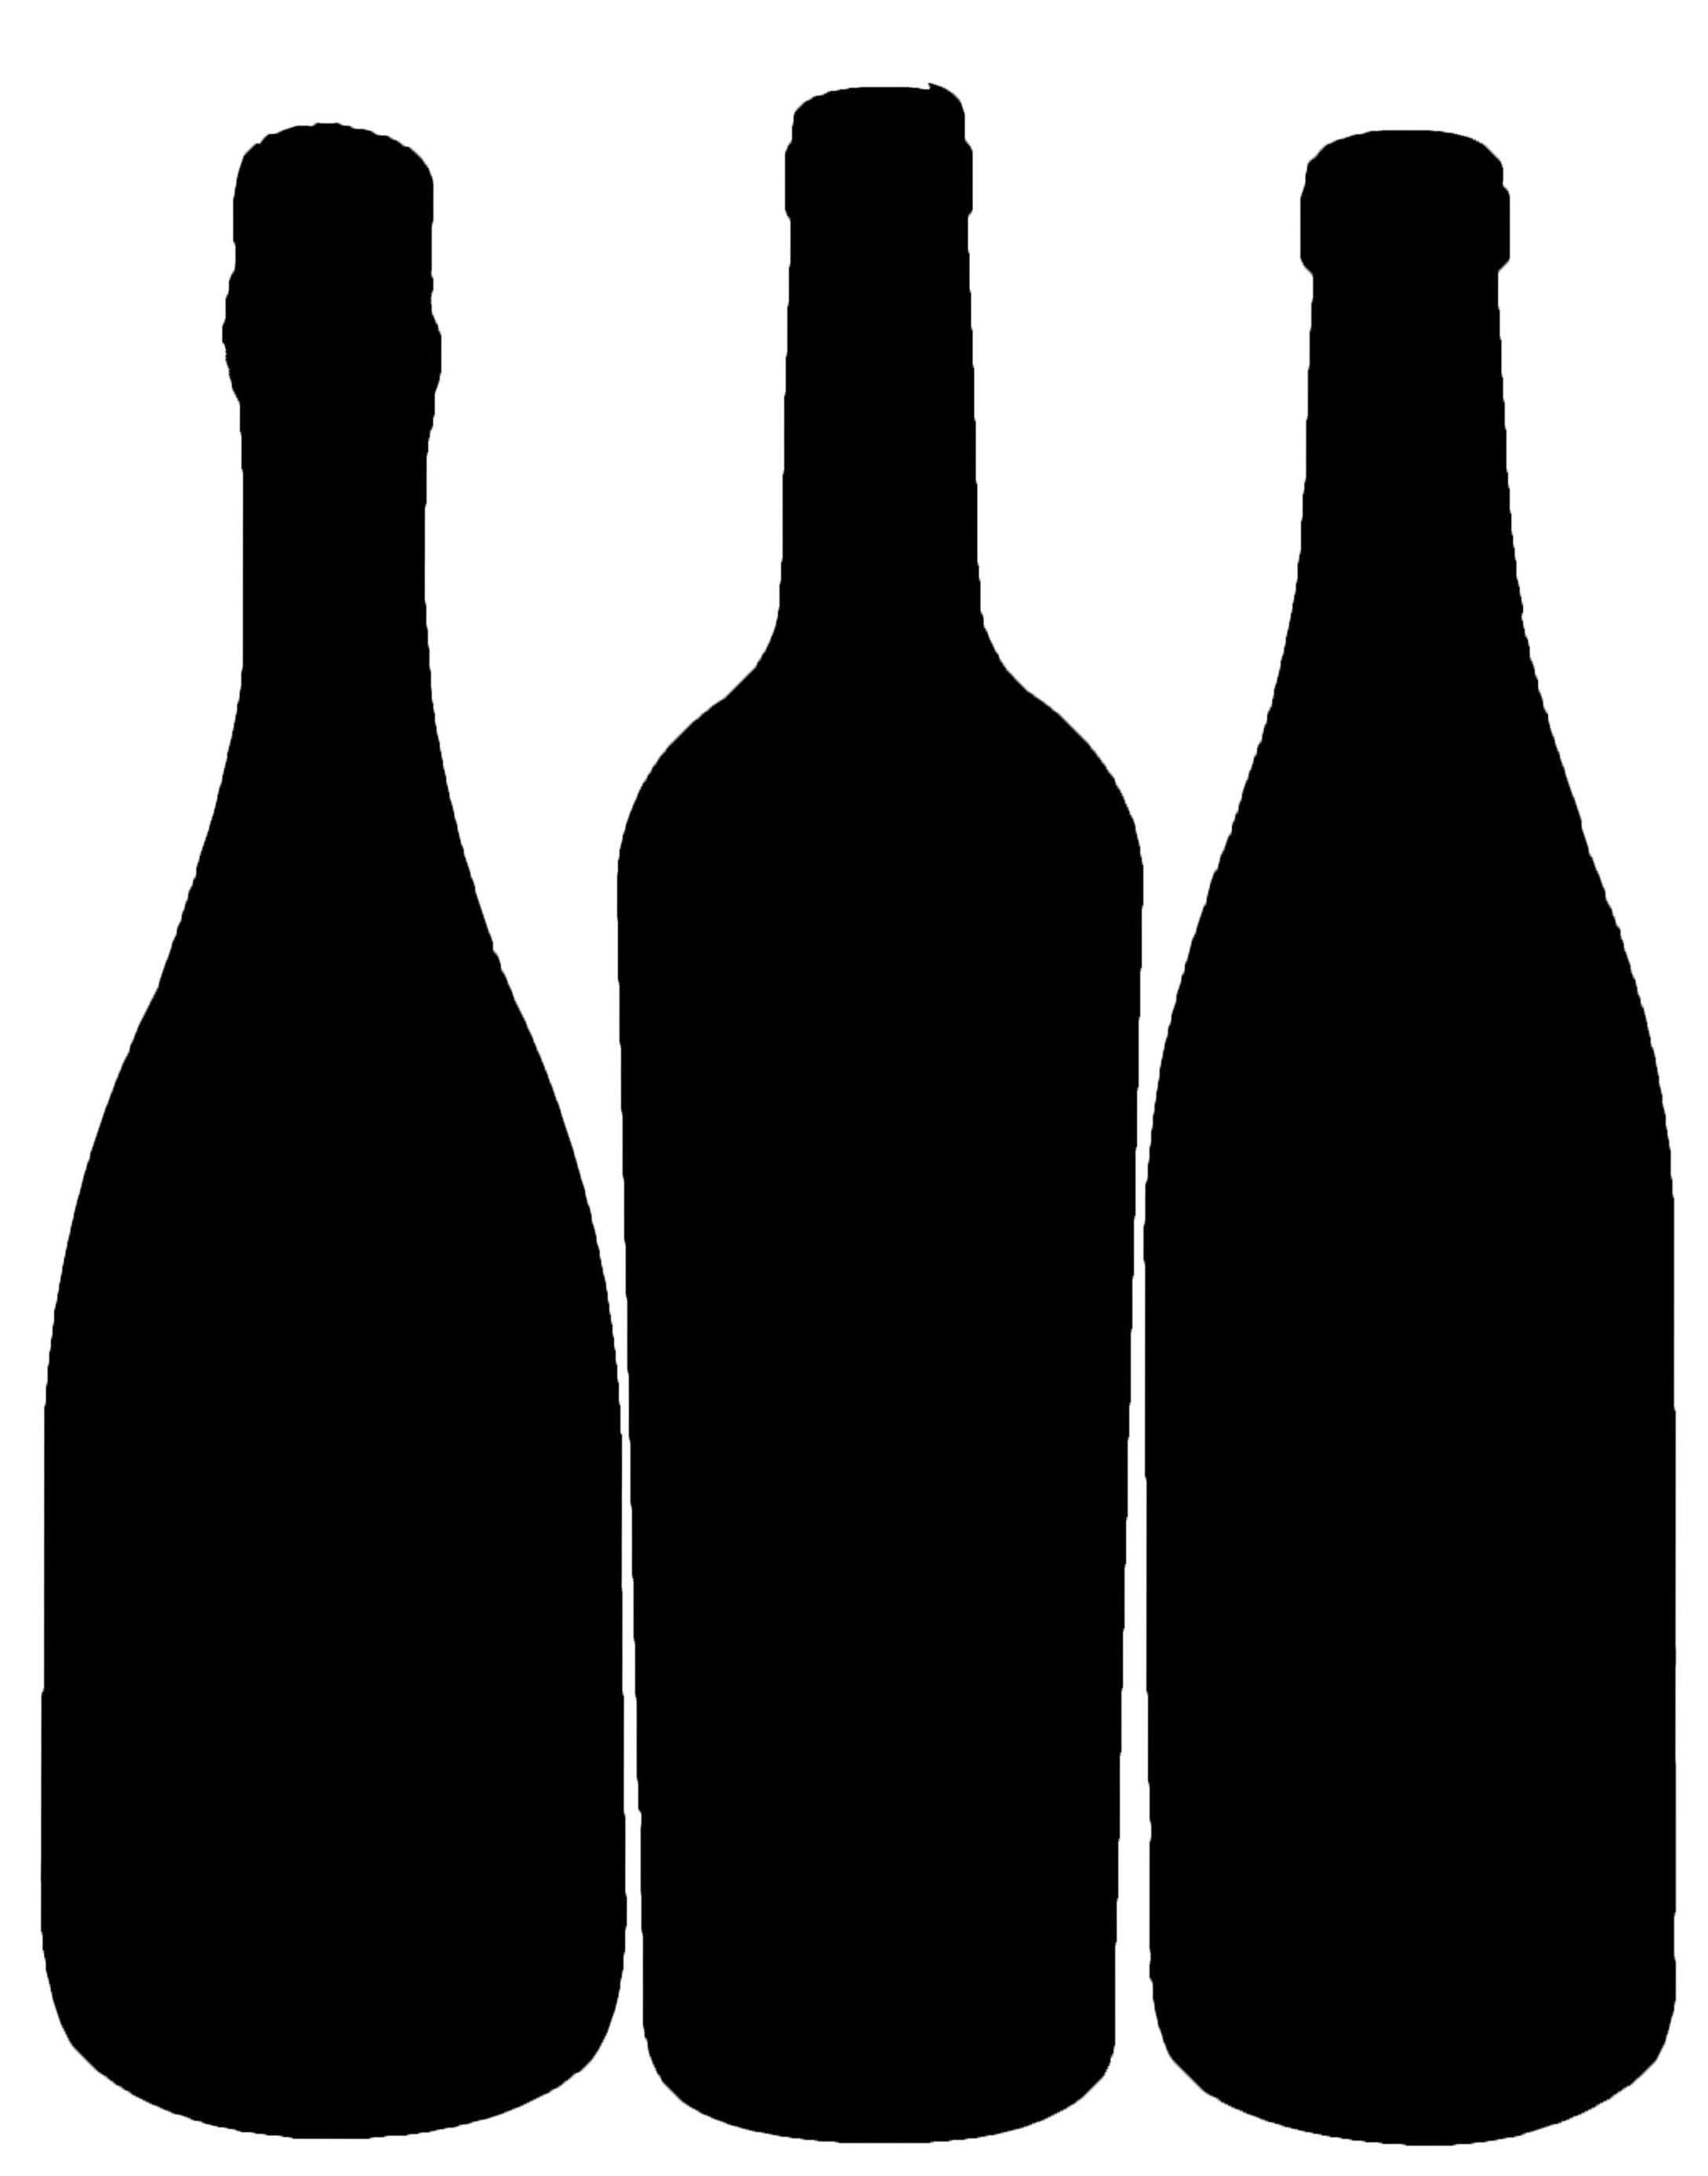 2178x2774 Best 15 Free Beer Bottle Silhouette Clipart With Drawing Design